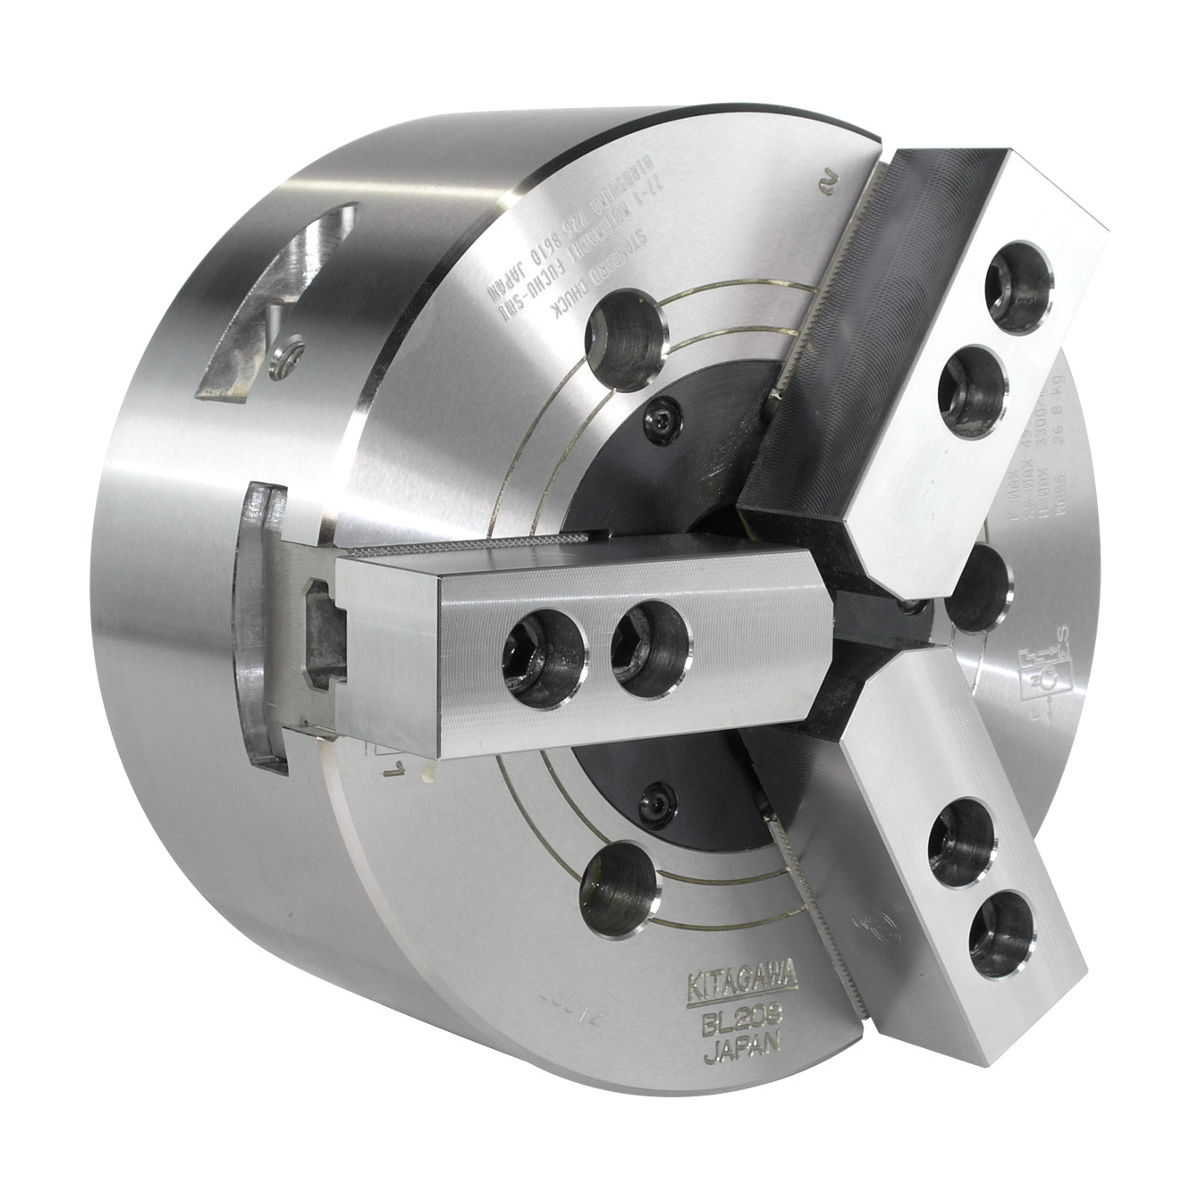 ab5c55e88c7f Power chuck   3-jaw   through-hole   alloy - BL208 - Kitagawa Europe ...